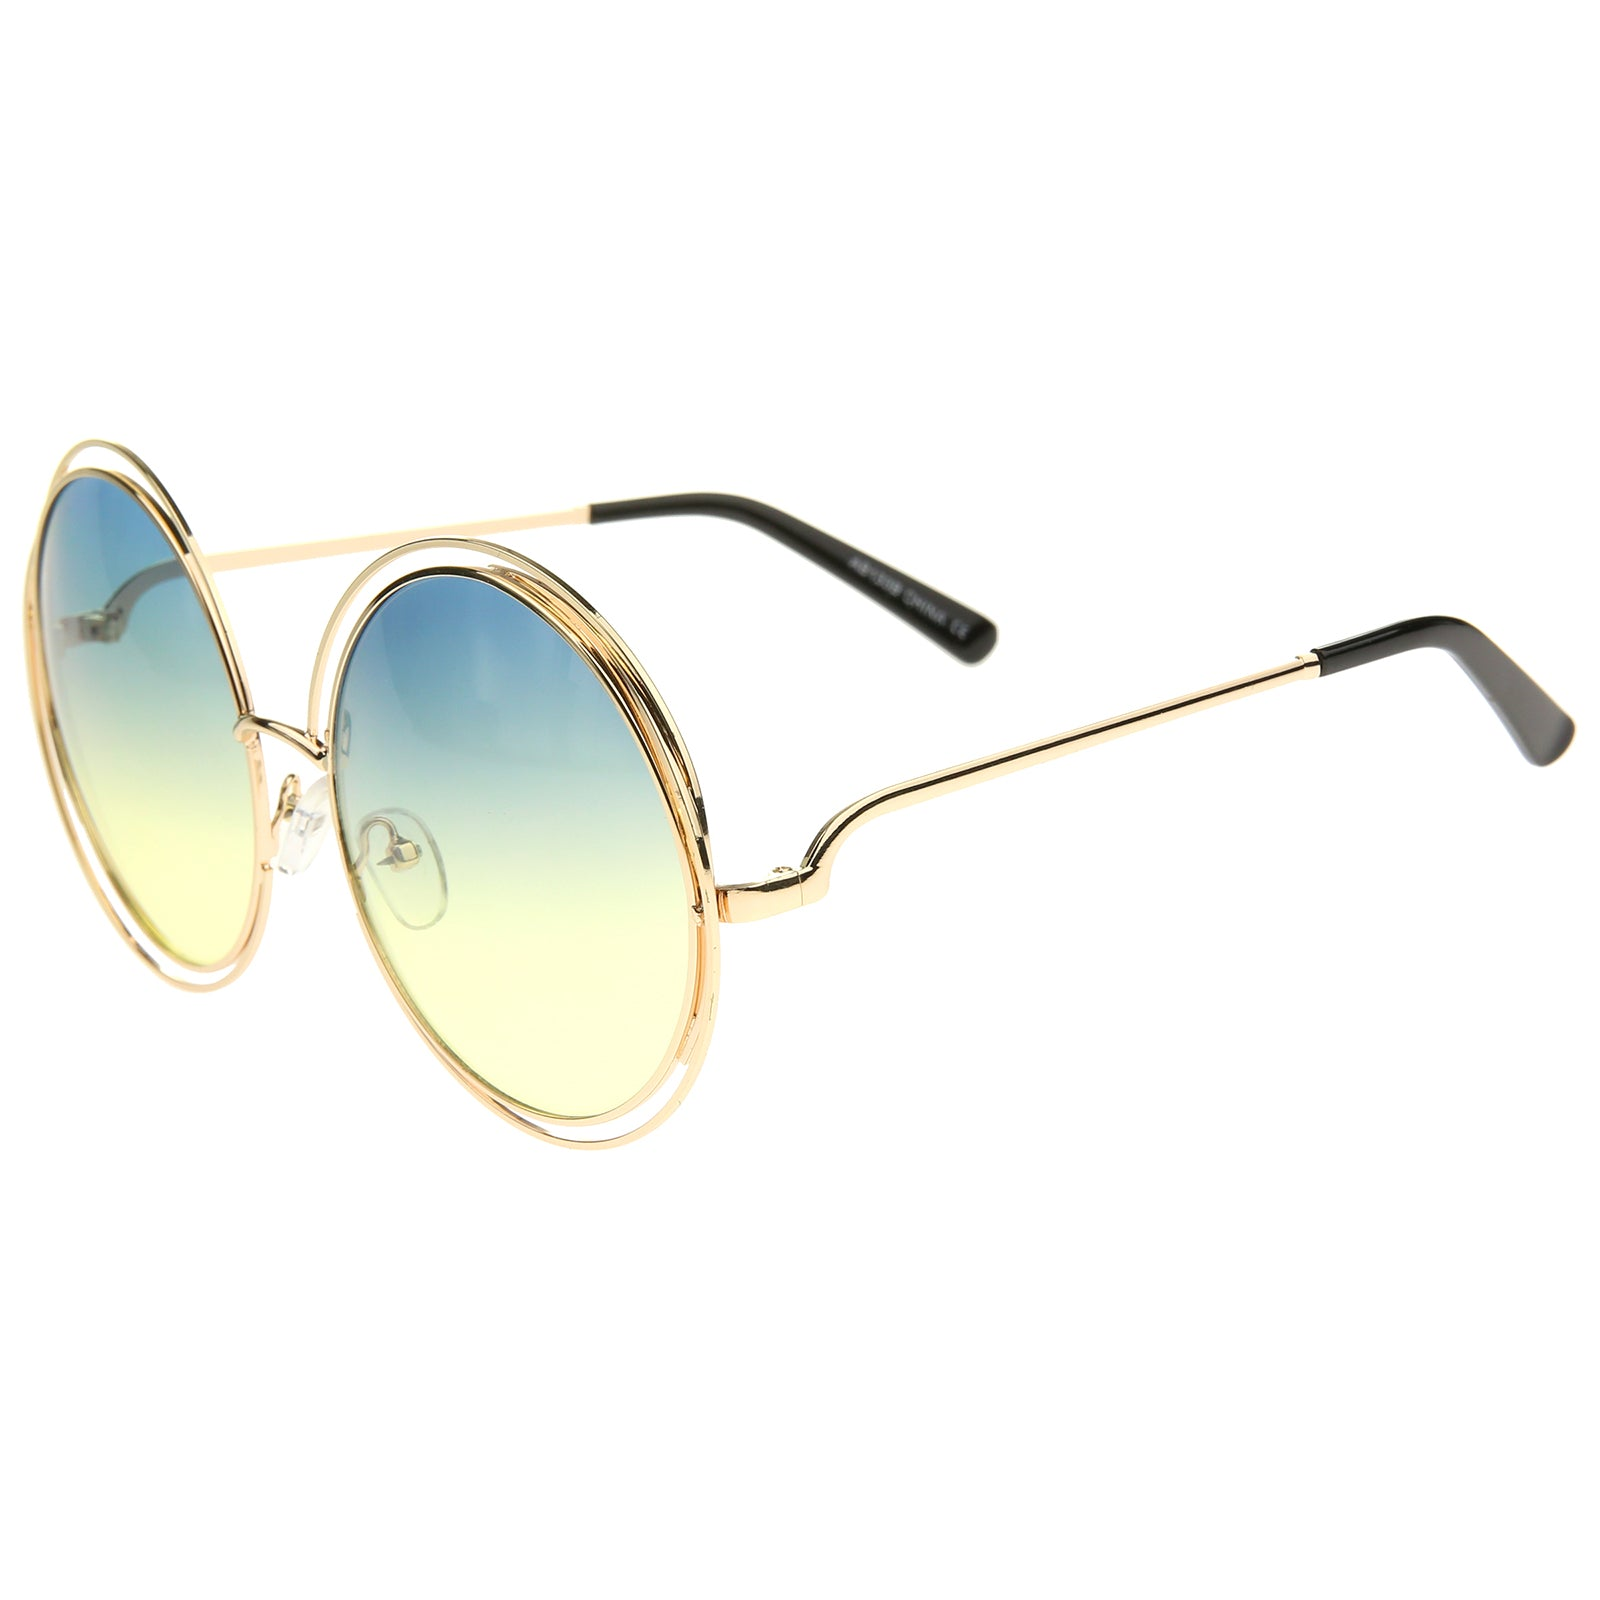 Oversize Wire Frame Gradient Two-Tone Color Lens Round Sunglasses 61mm - sunglass.la - 19